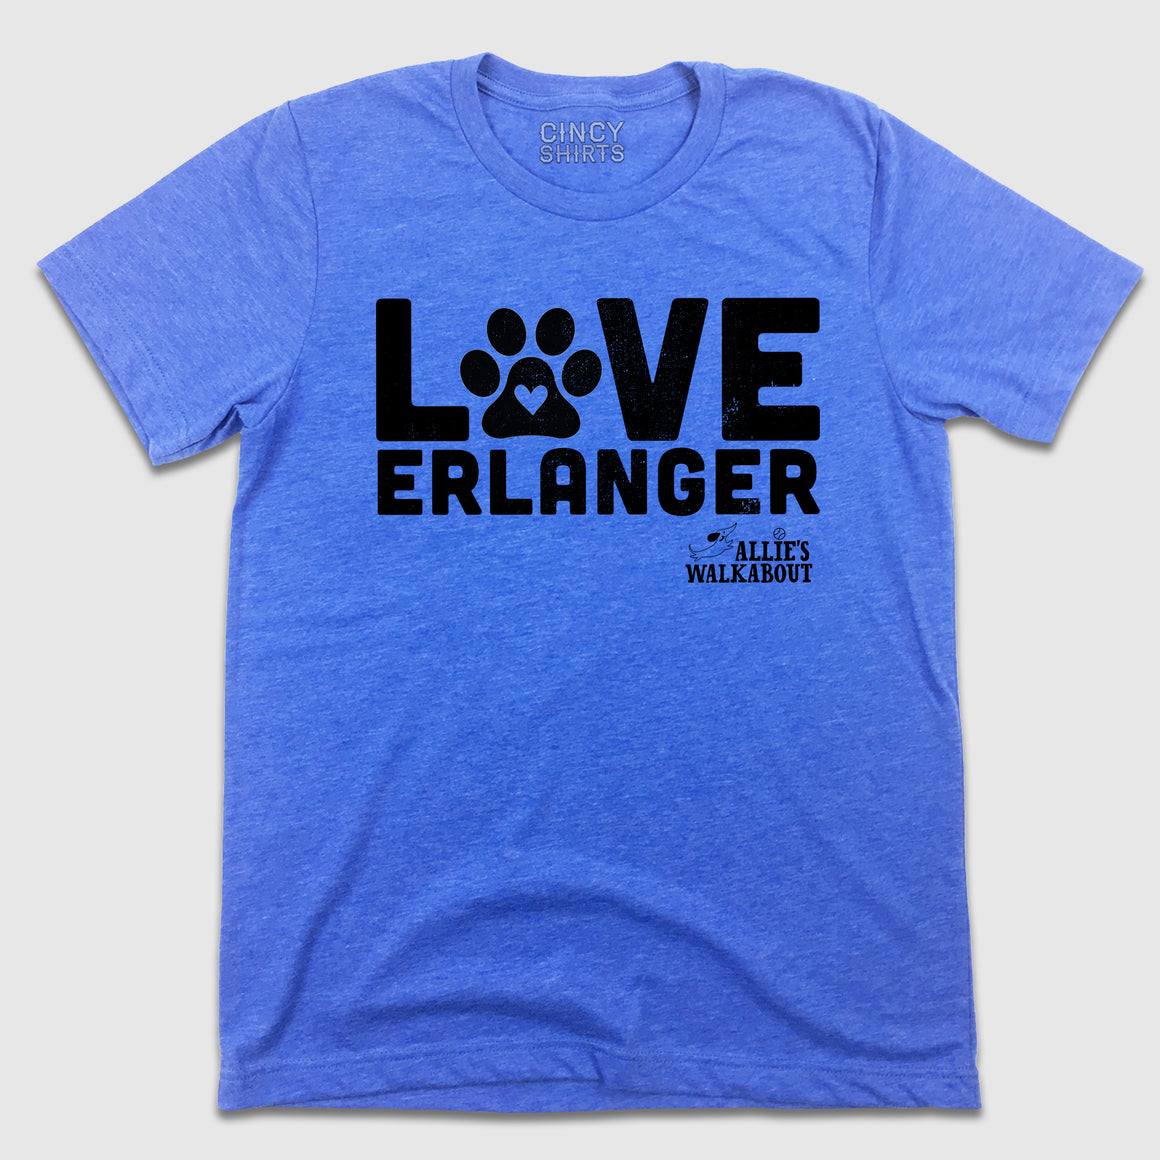 Love Erlanger - Allie's Walkabout - Cincy Shirts